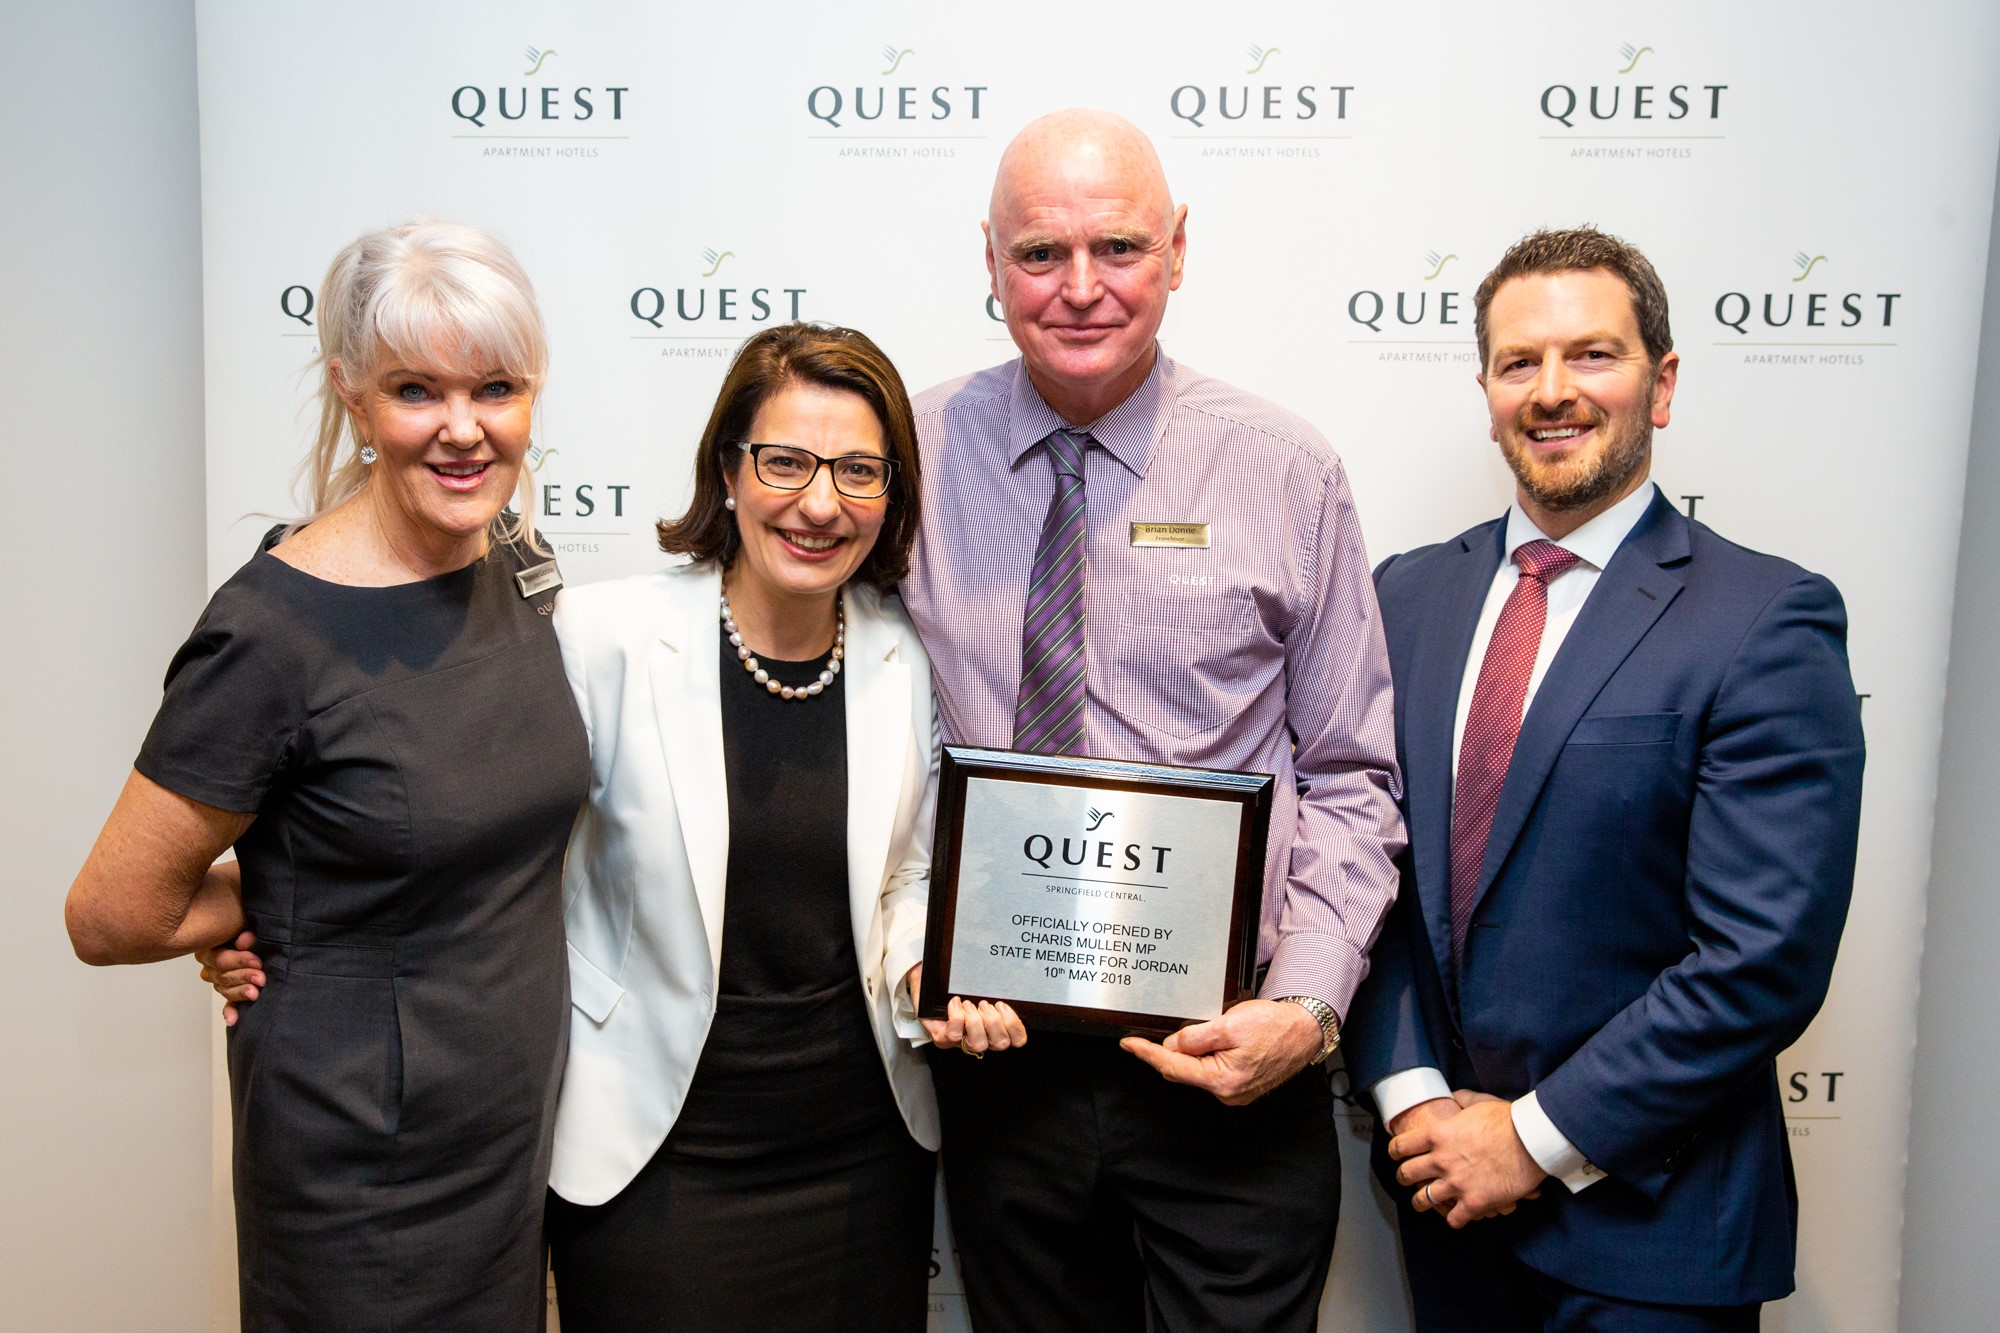 Quest Springfield Central - Now Officially Open